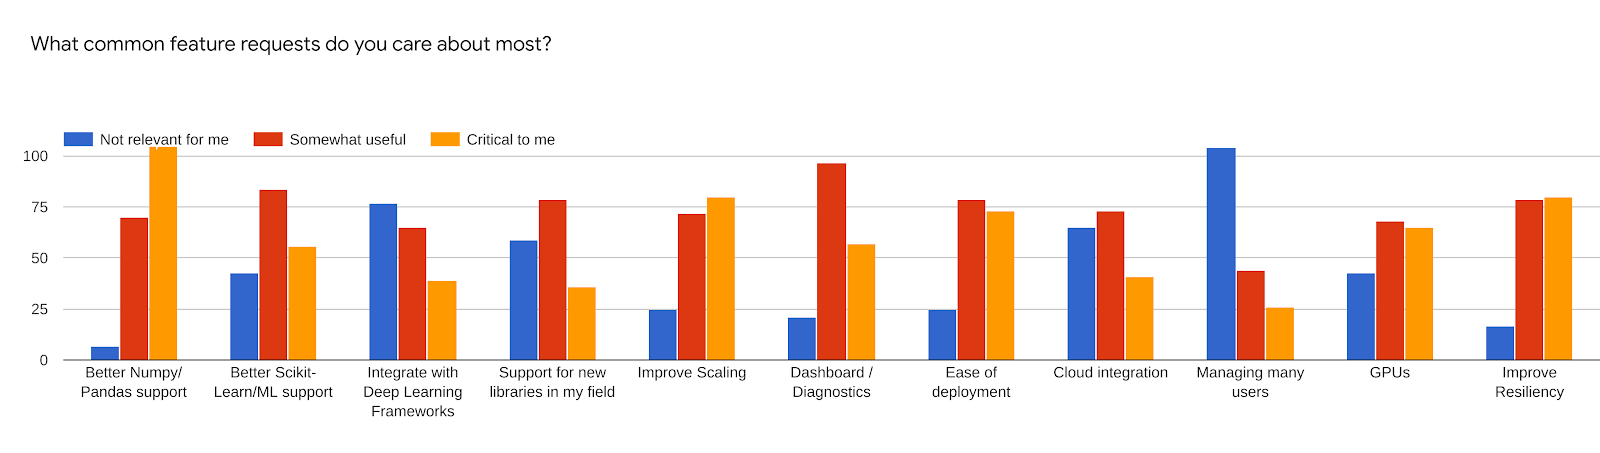 Forms response chart. Question title: What common feature requests do you care about most?. Number of responses: .